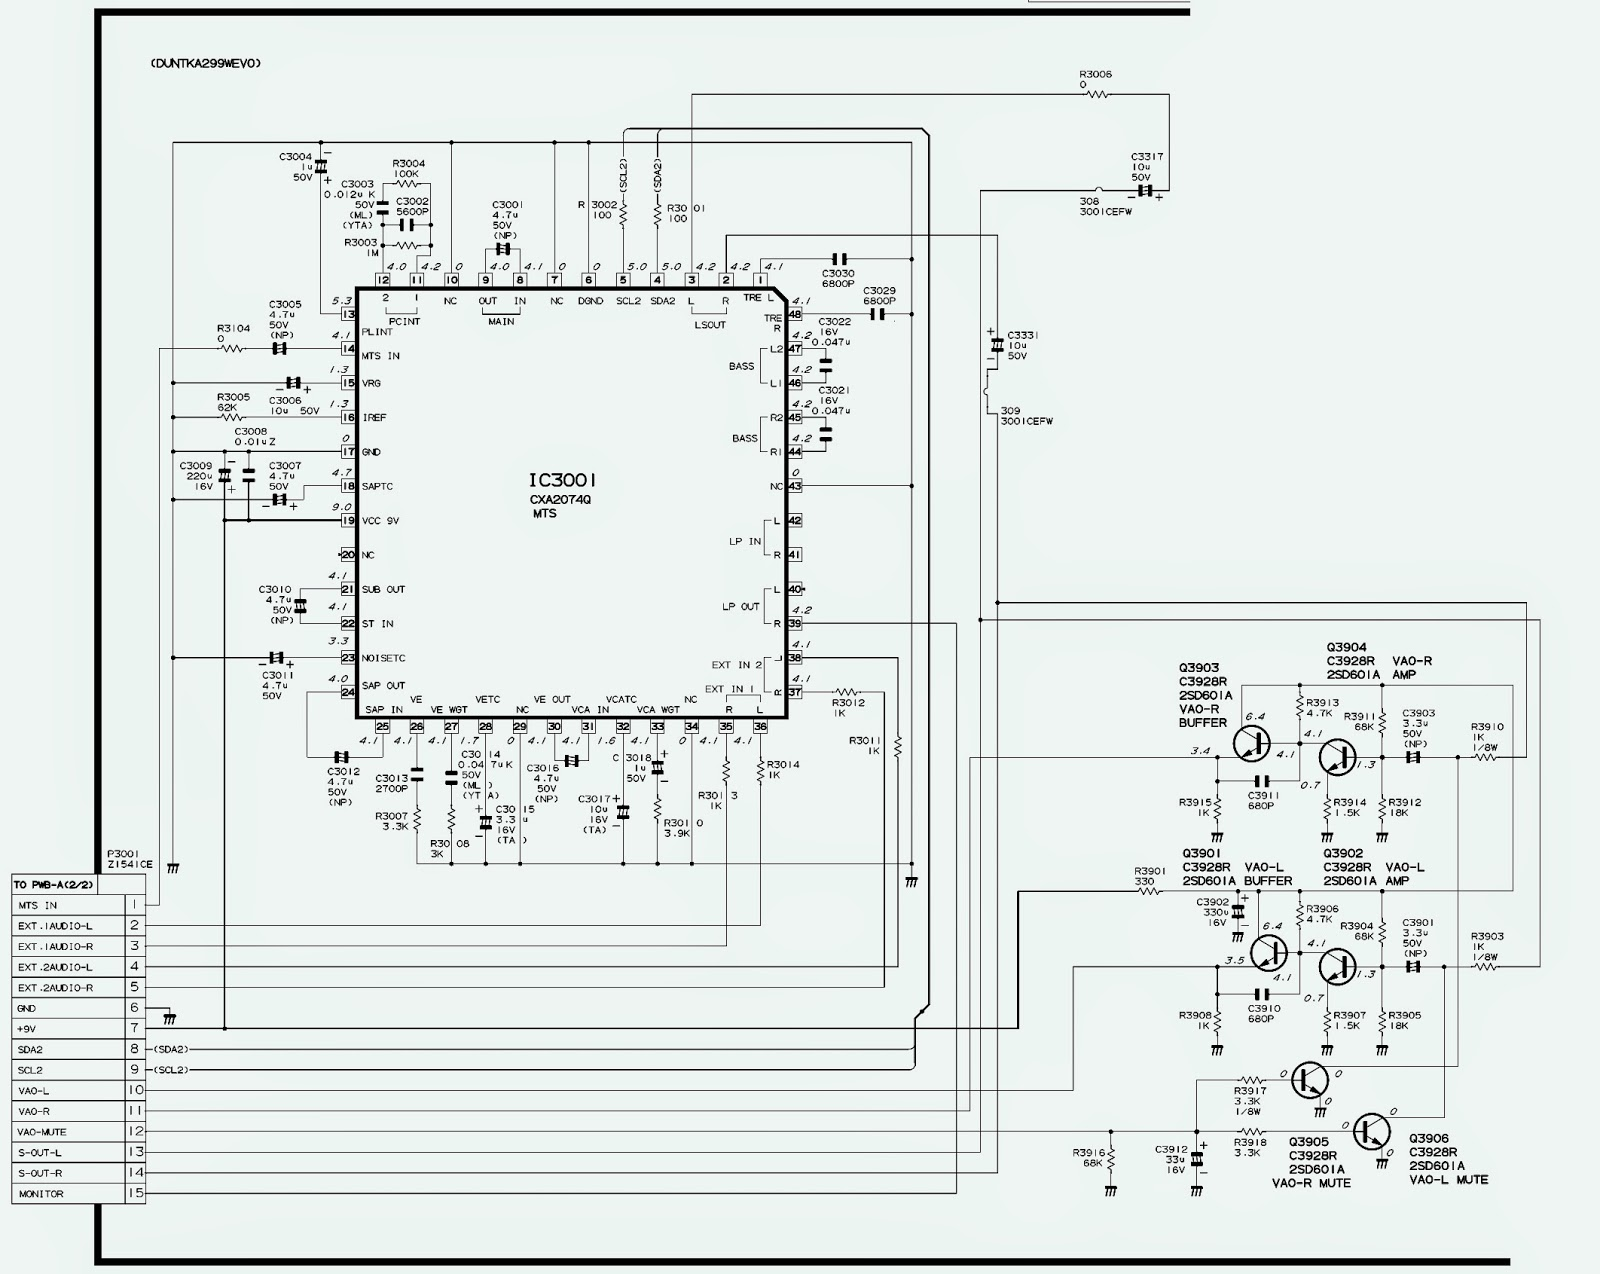 3.bmp sharp 21v fl200 crt tv service mode circuit diagram Flat Screen TV Drawing at gsmportal.co